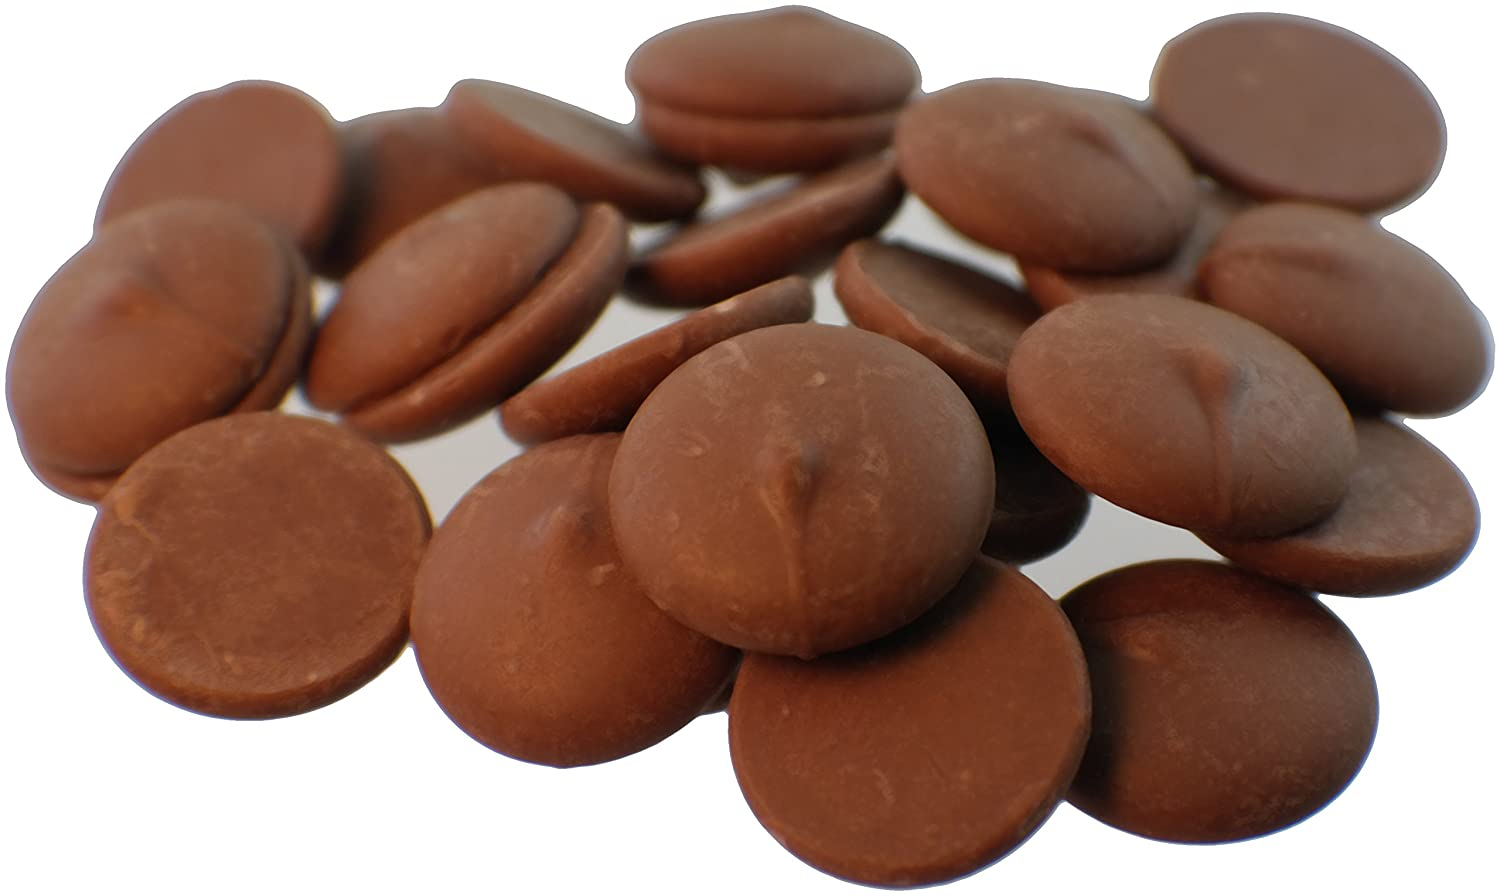 Mrs. Cavanaugh's Limited price sale Milk Chocolate Melting Buttons Oakland Mall 5-lbs